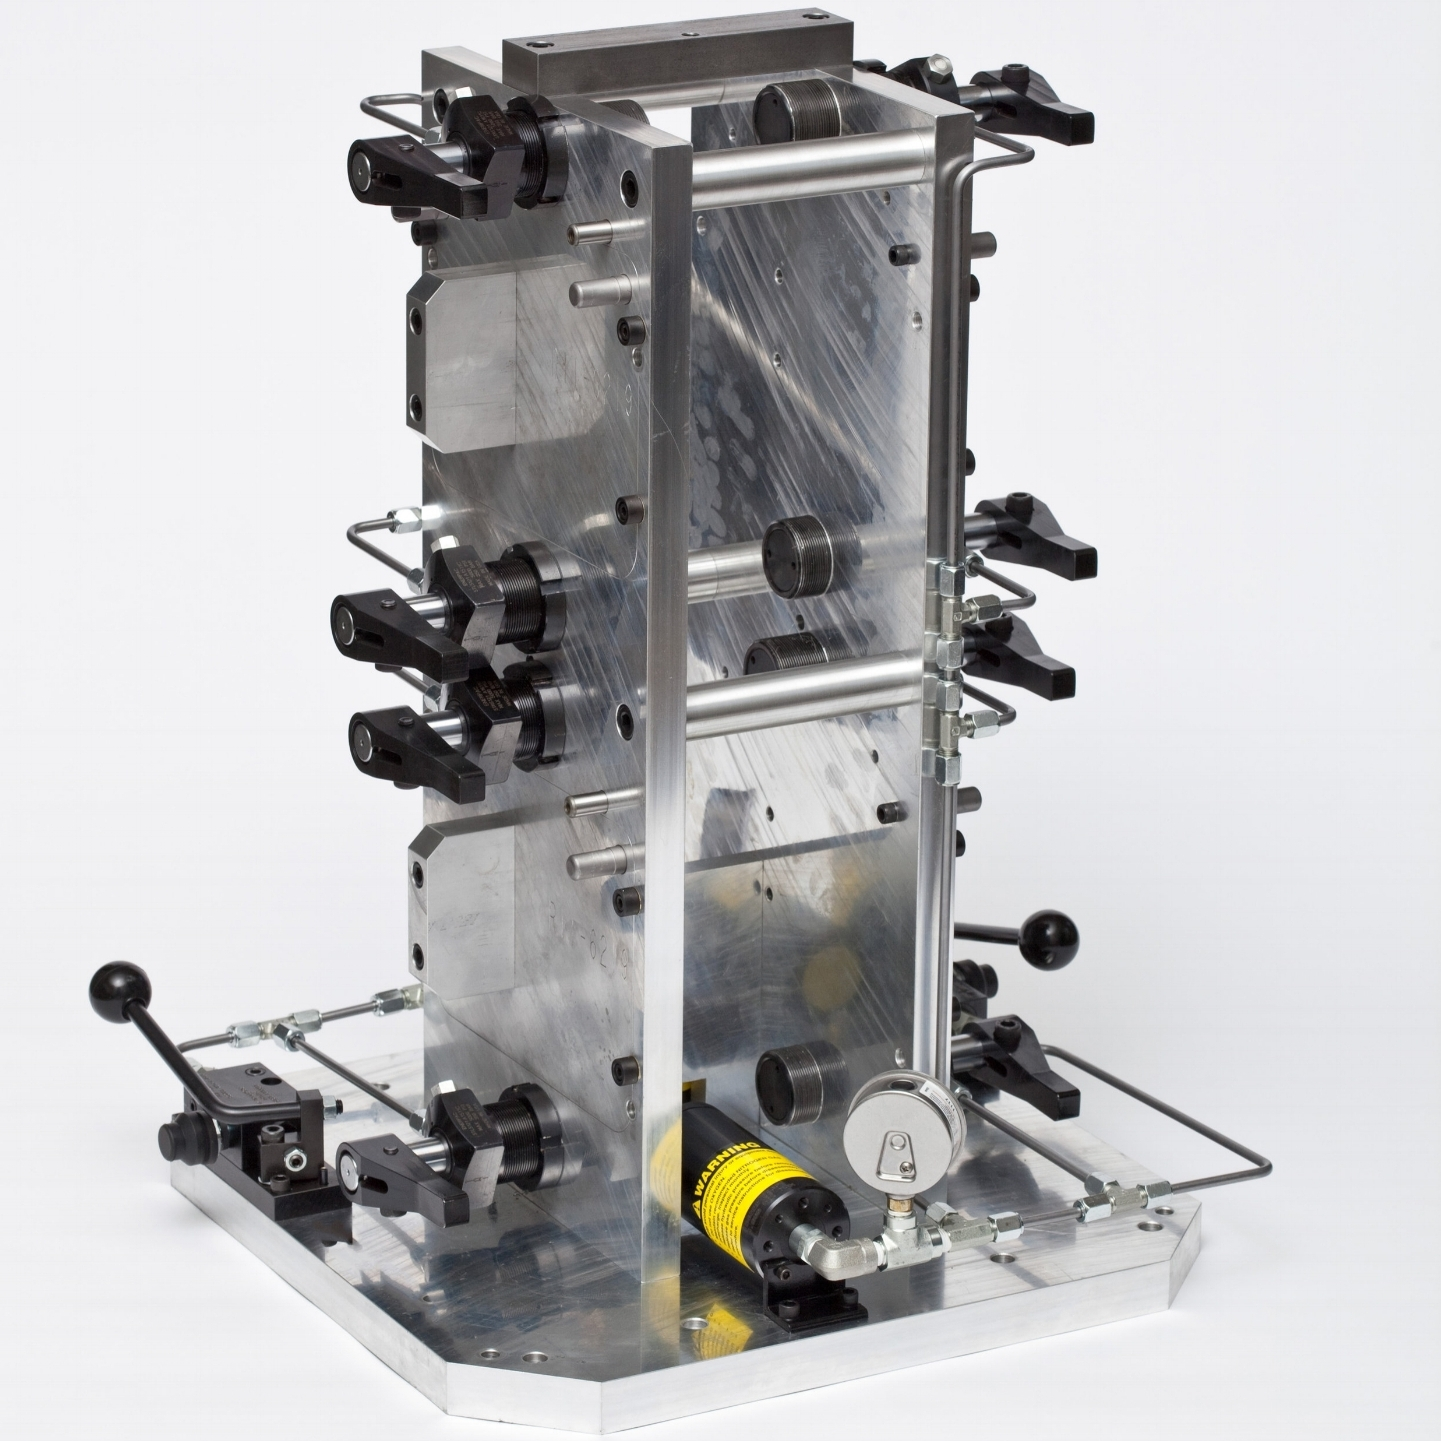 Machining Fixtures - Machining fixtures are required for most large parts or when the parts are not suitable for vise clamping. Our long part run fixtures use hydraulic or pneumatic clamping to increase throughput, decrease operator fatigue, and improve clamp load repeatability. We strive to ensure your machined parts will comply with the required specifications.